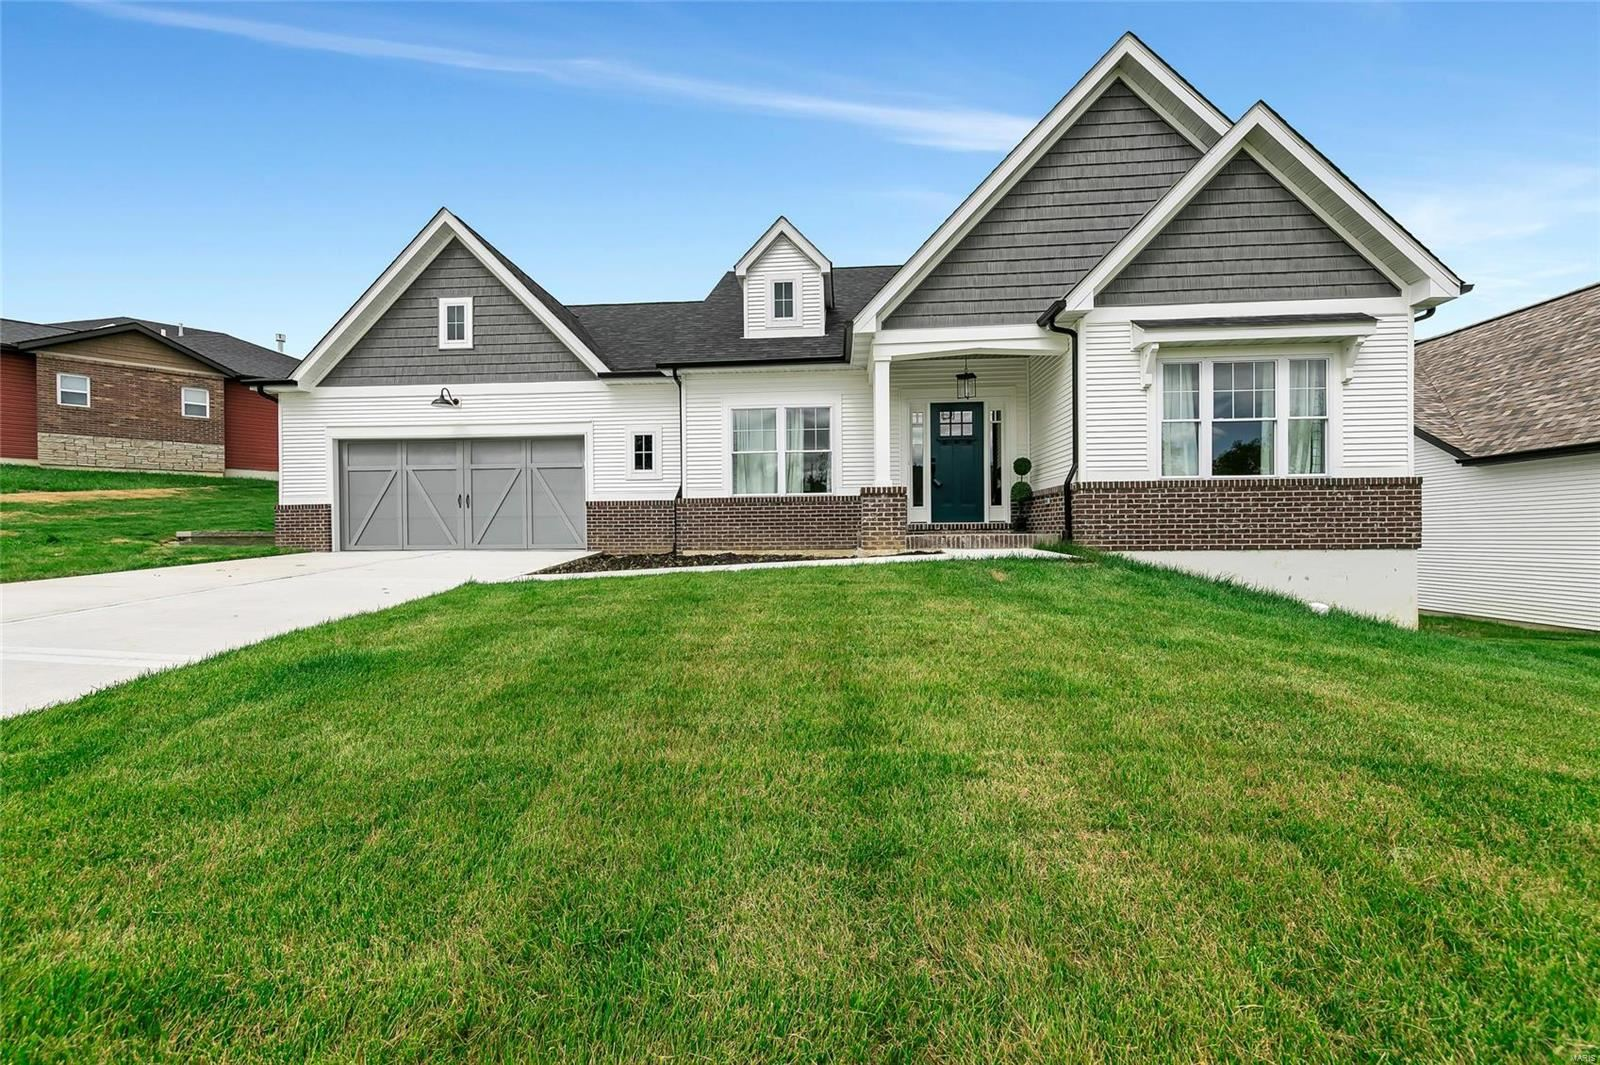 7969 Donner Ridge, Caseyville, IL 62232 - MLS#: 19079677